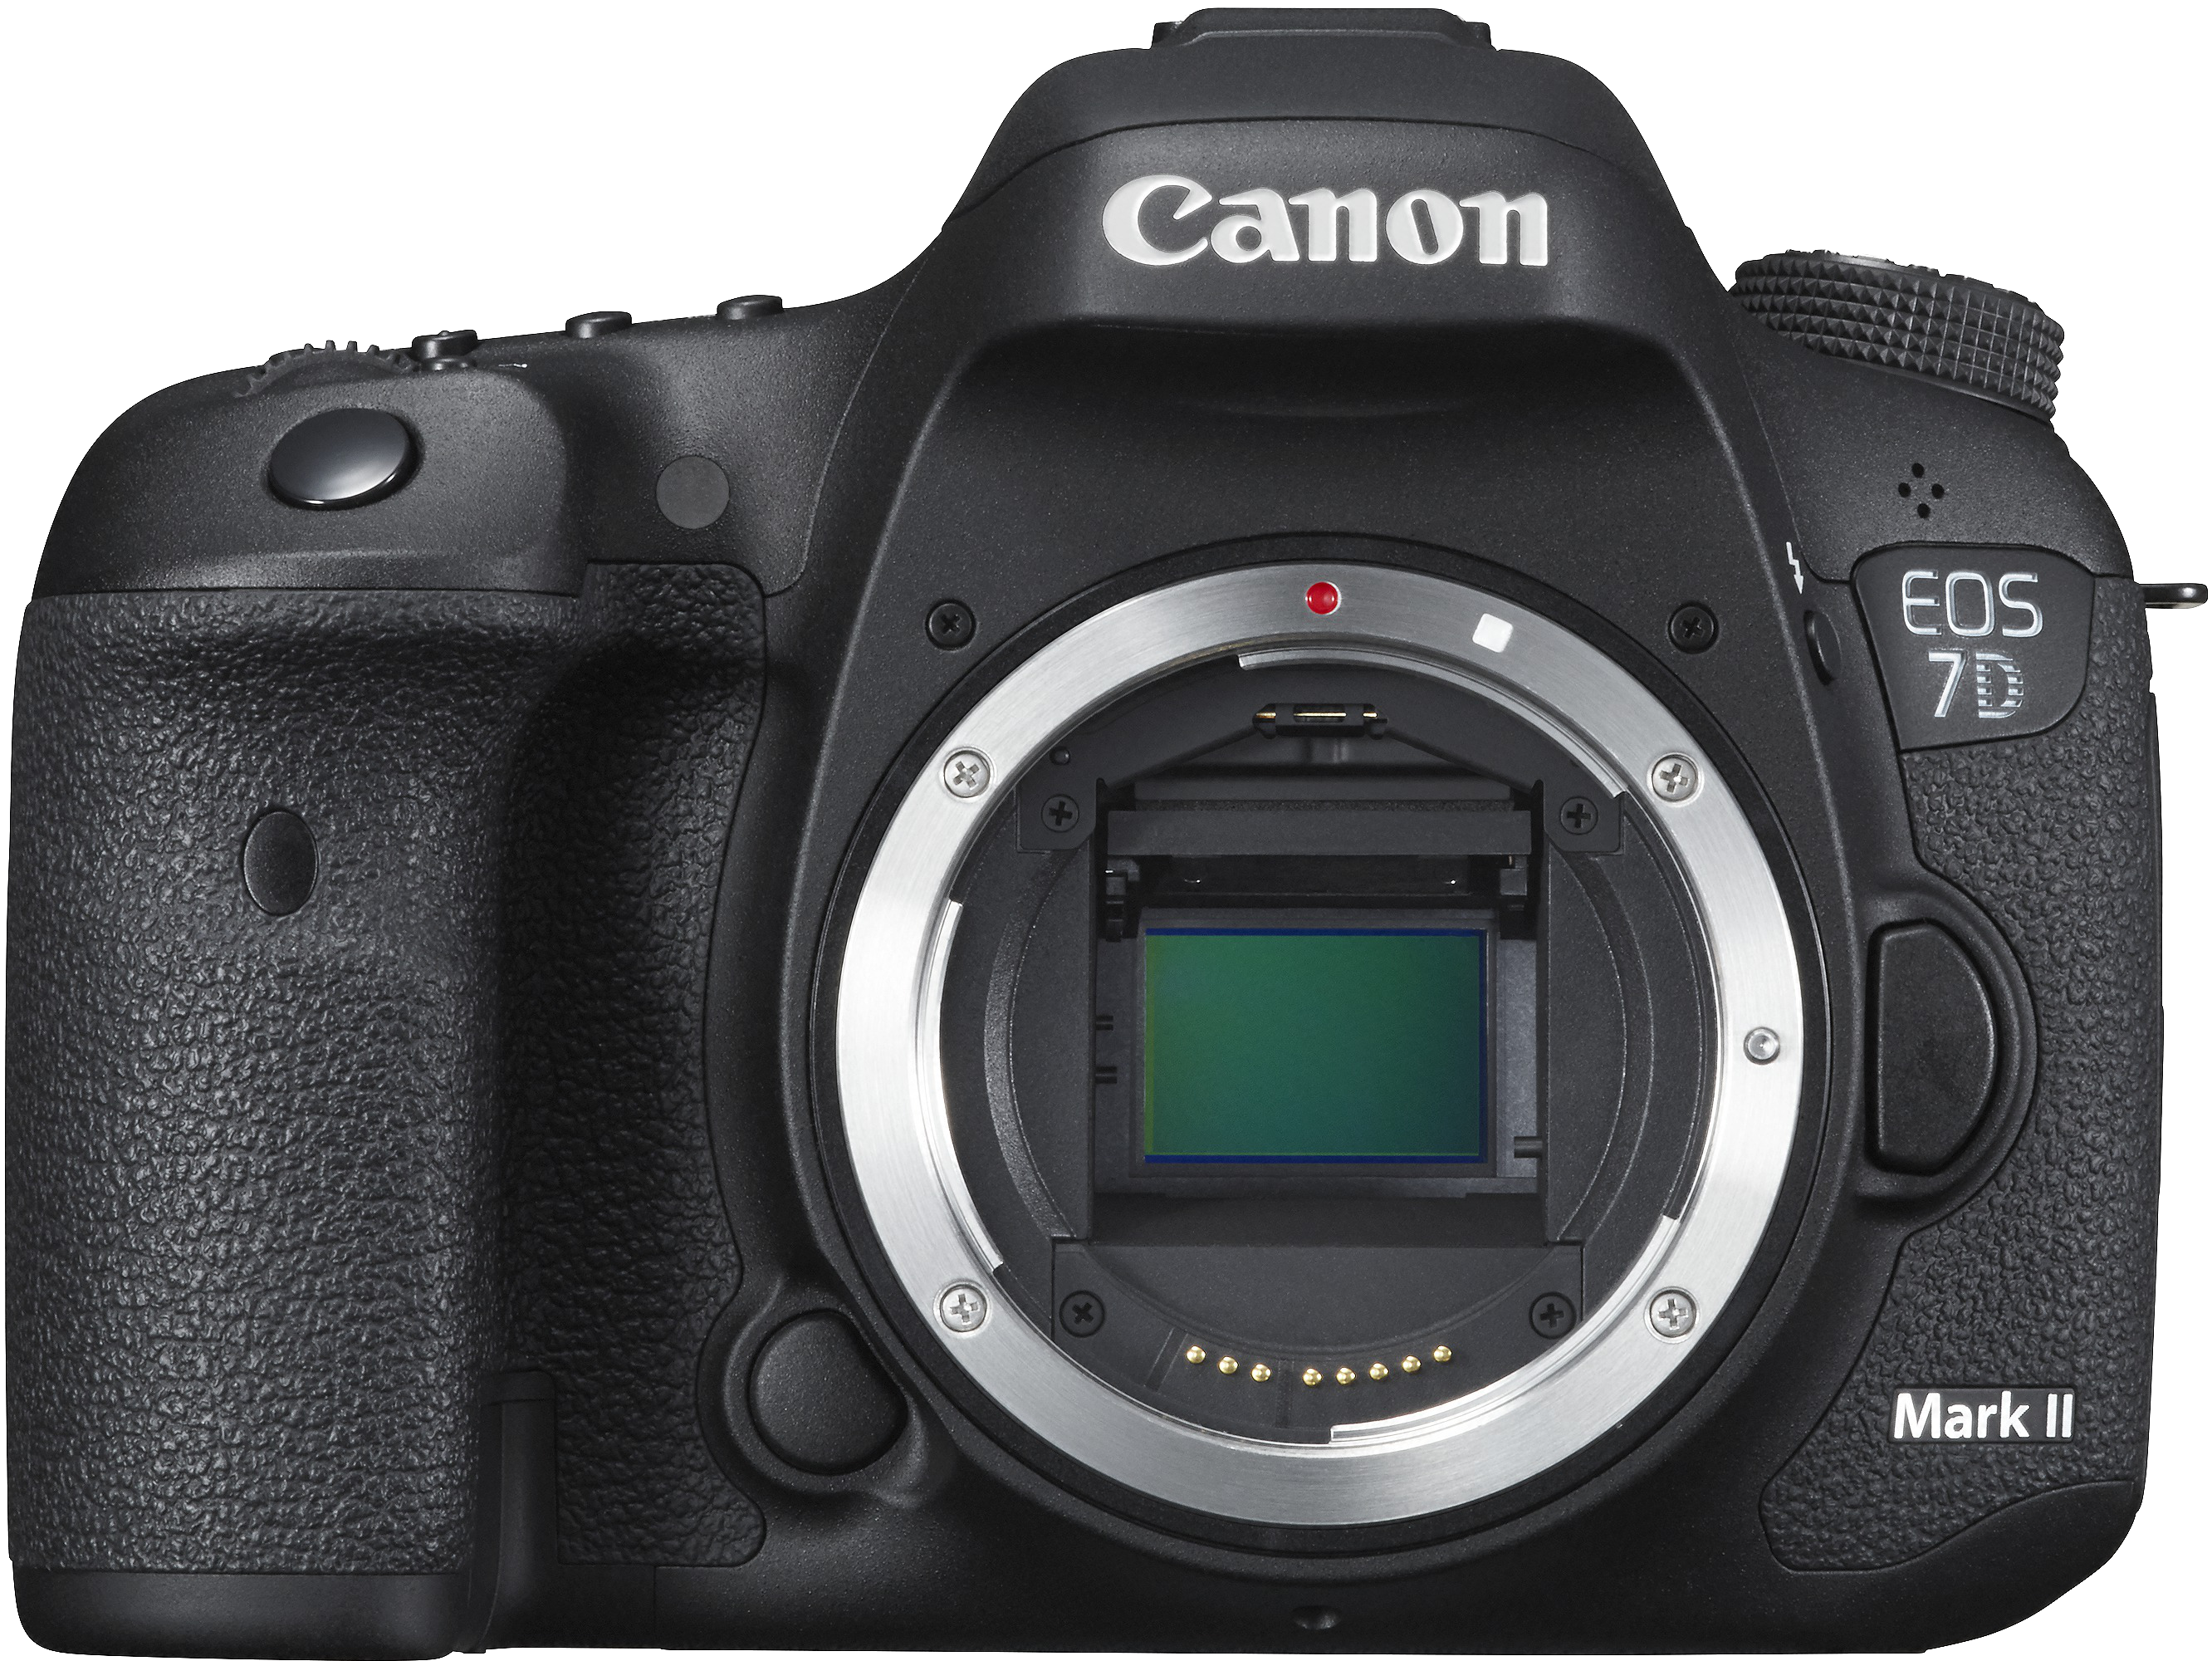 Canon's flagship crop sensor camera with high end autofocus and 10fps shooting. Great for sports or action.